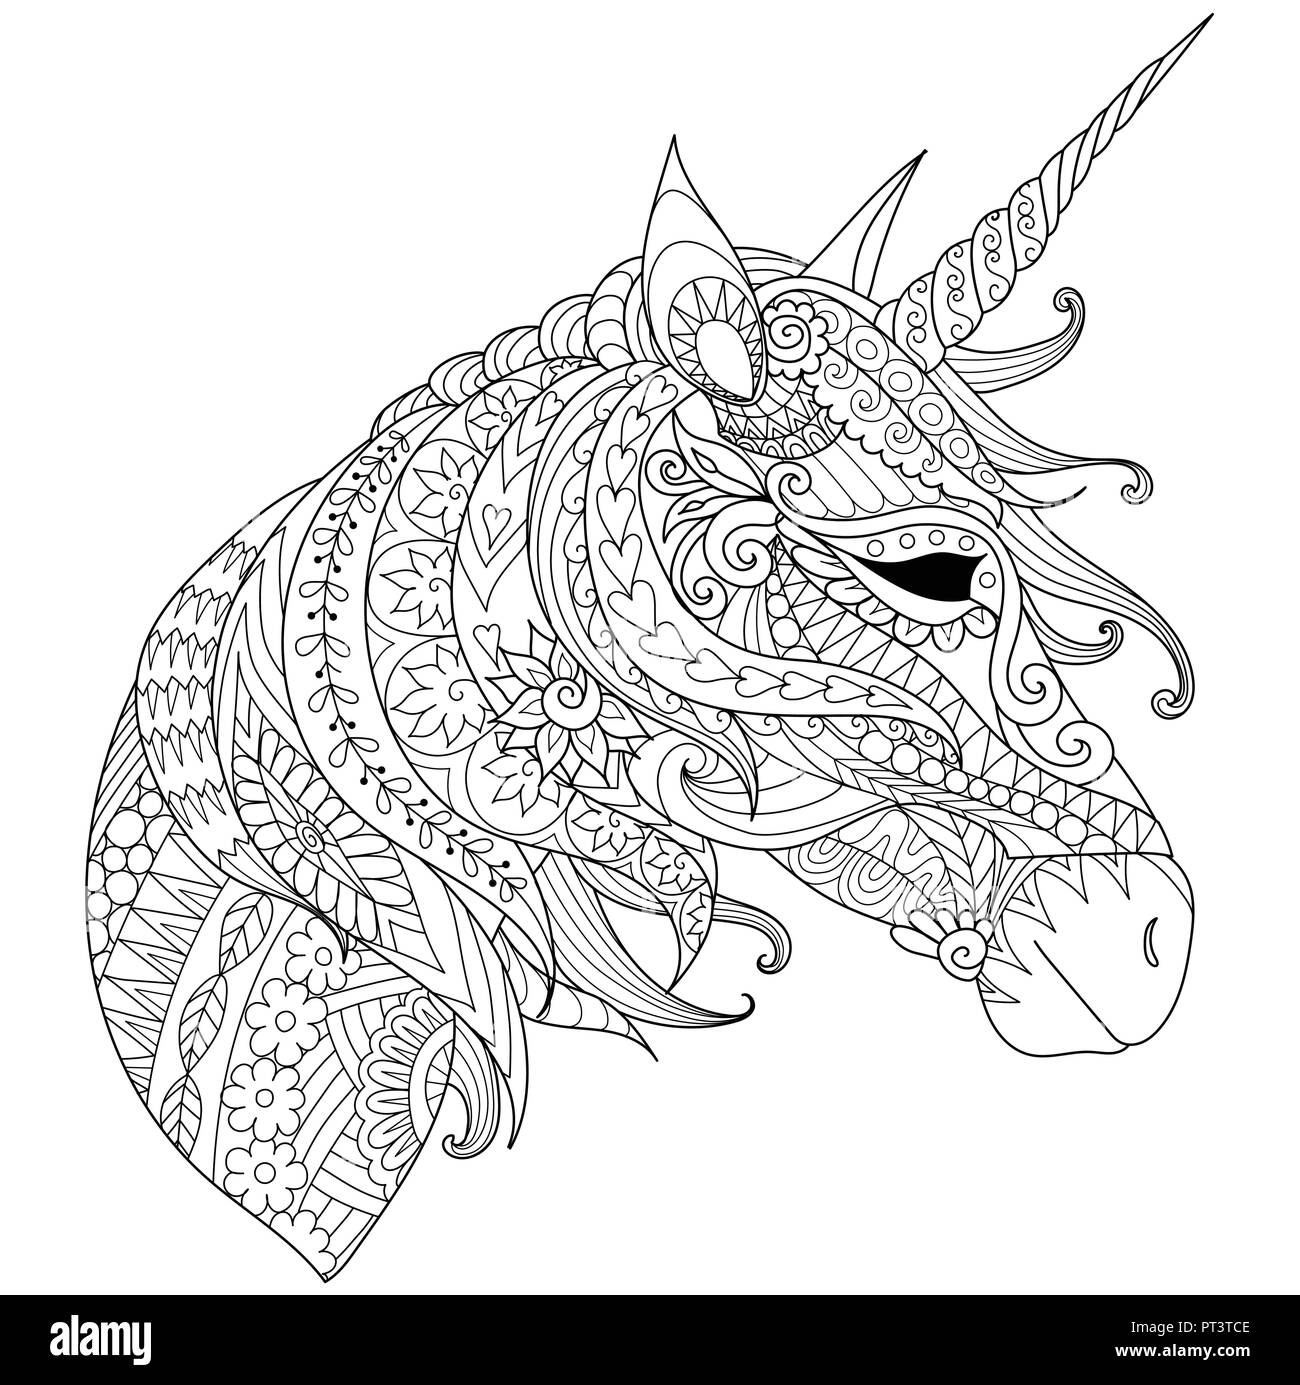 - Coloring Book For Adults. Colouring Pictures With Fairytale Magic